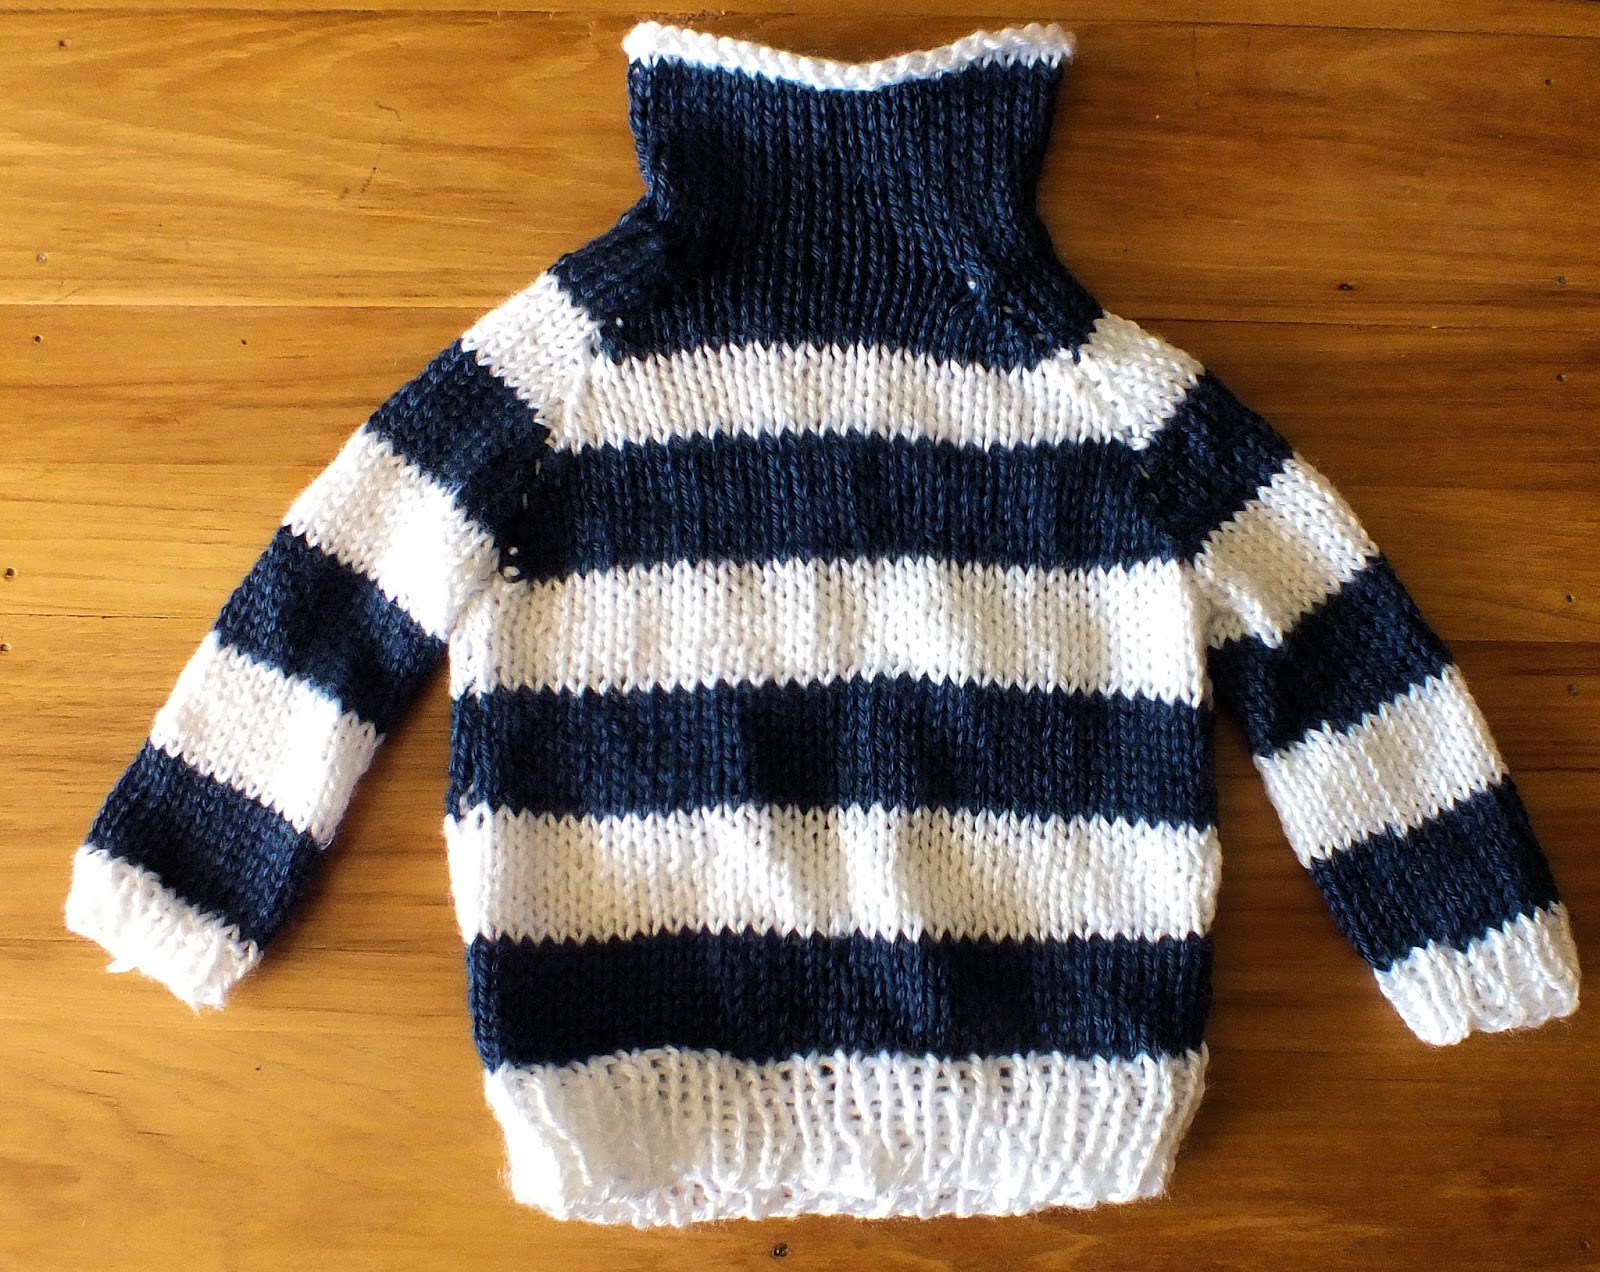 The Loom Muse : How to Loom Knit a Toddler/ Baby Sweater